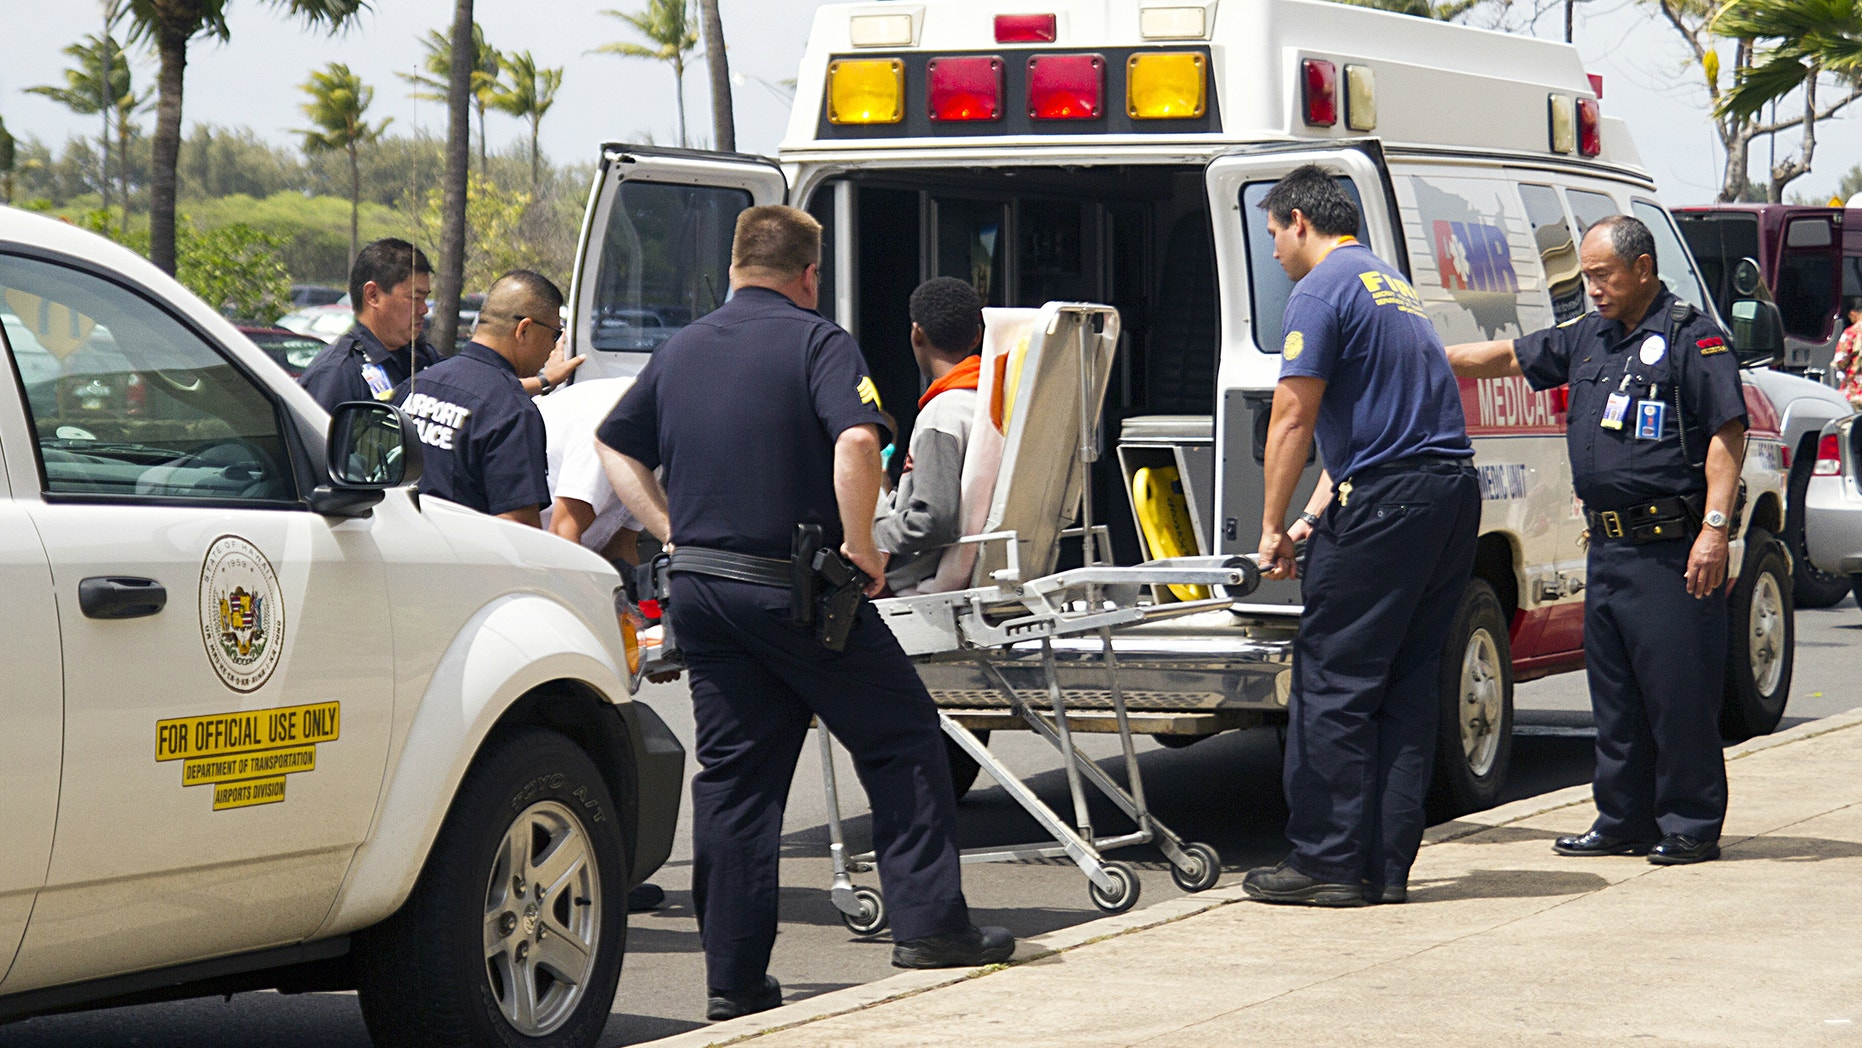 A 16-year-old boy, seen sitting on a stretcher center, who stowed away in the wheel well of a flight from San Jose, Calif., to Maui is loaded into an ambulance at Kahului Airport in Kahului, Maui, Hawaii Sunday afternoon, April 20, 2014.